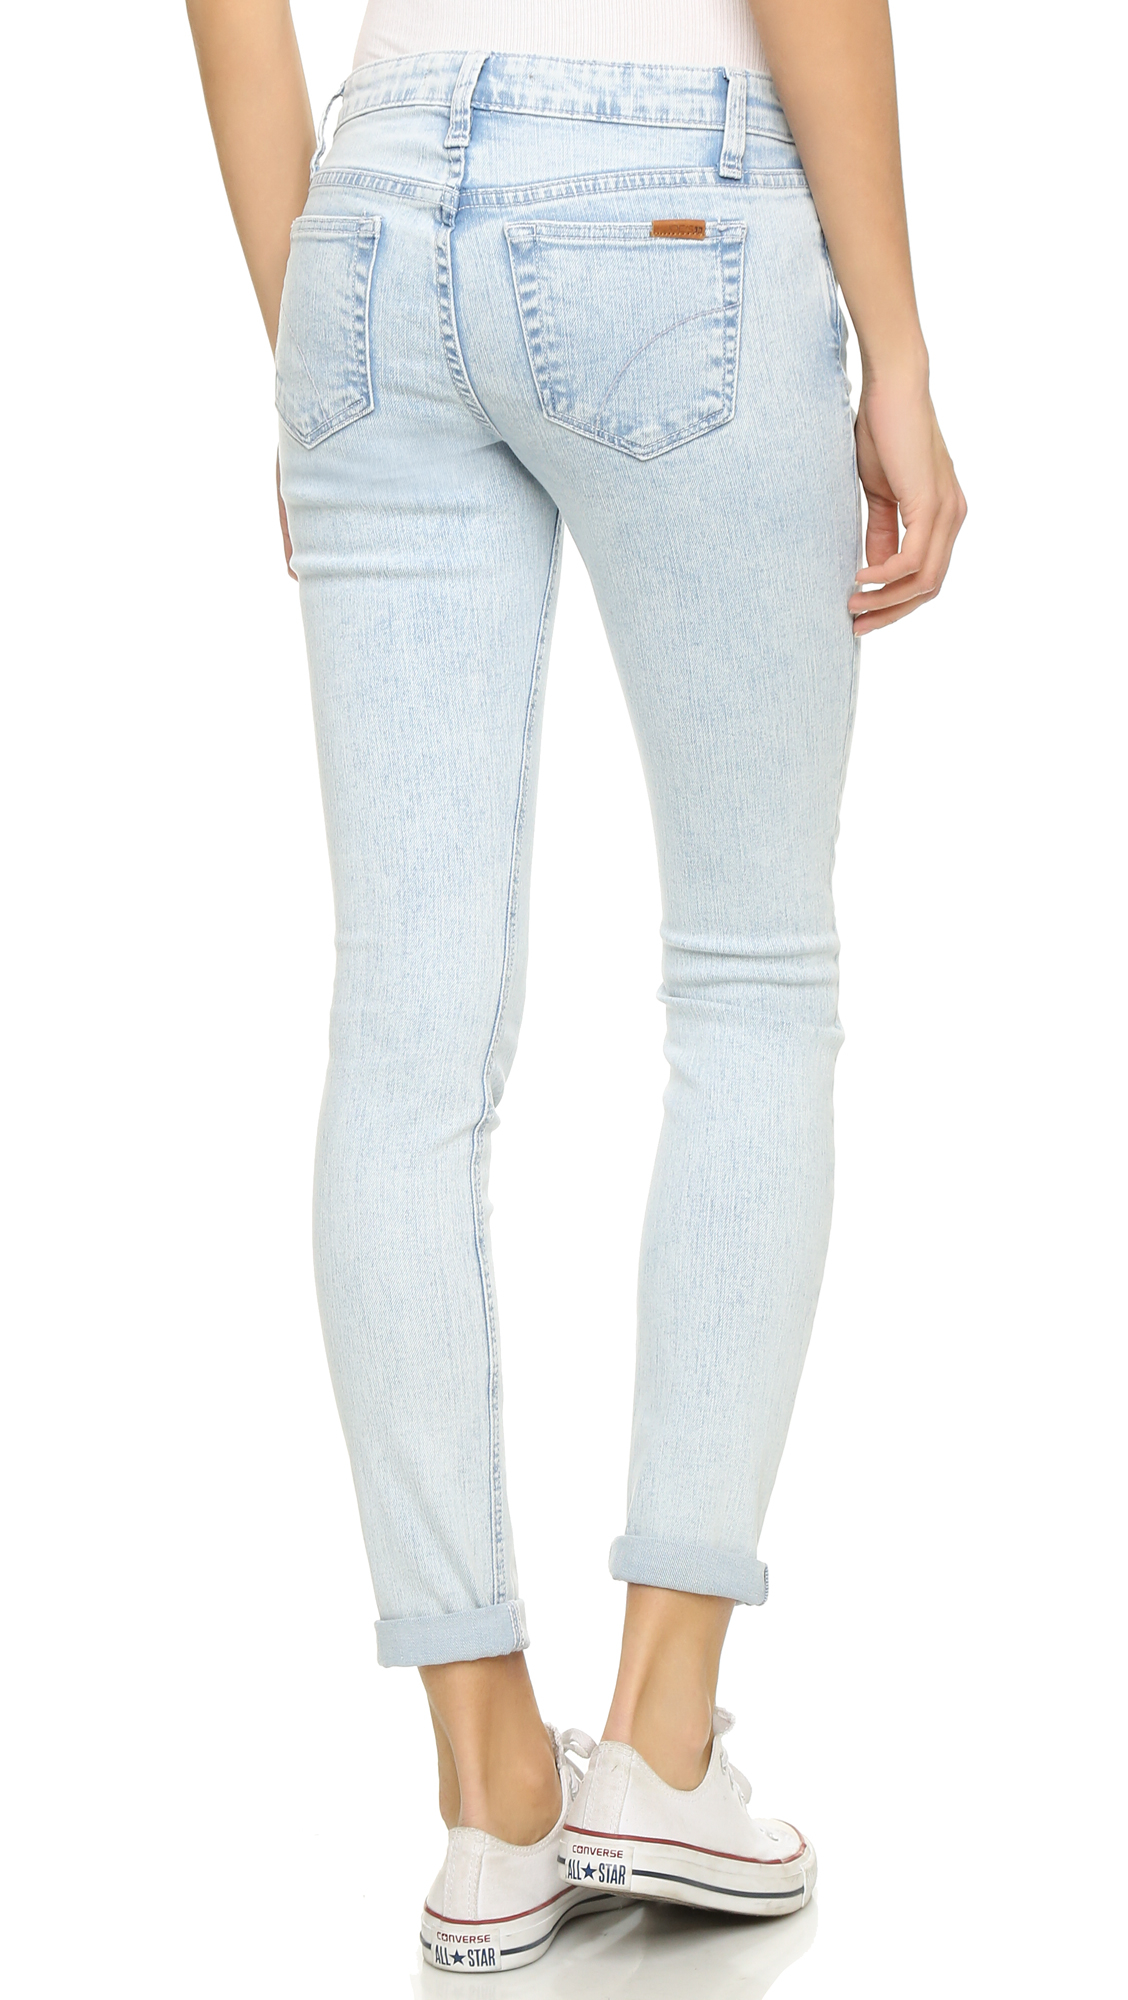 Rich royal skinny jeans